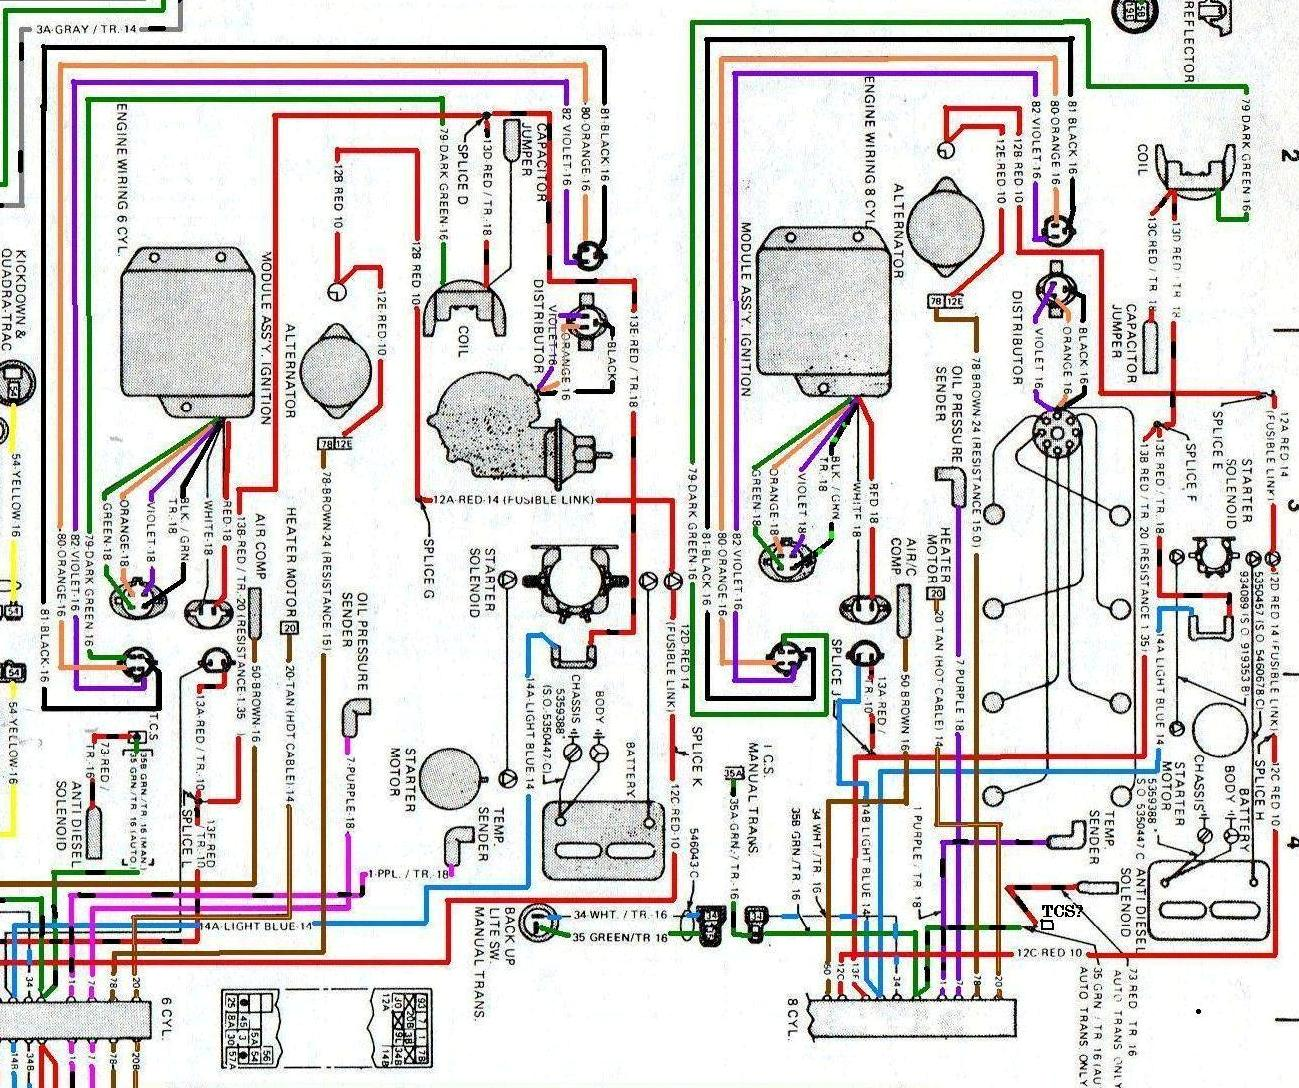 cj5 ignition wiring harness - wiring diagram tags storage-base -  storage-base.discoveriran.it  discoveriran.it